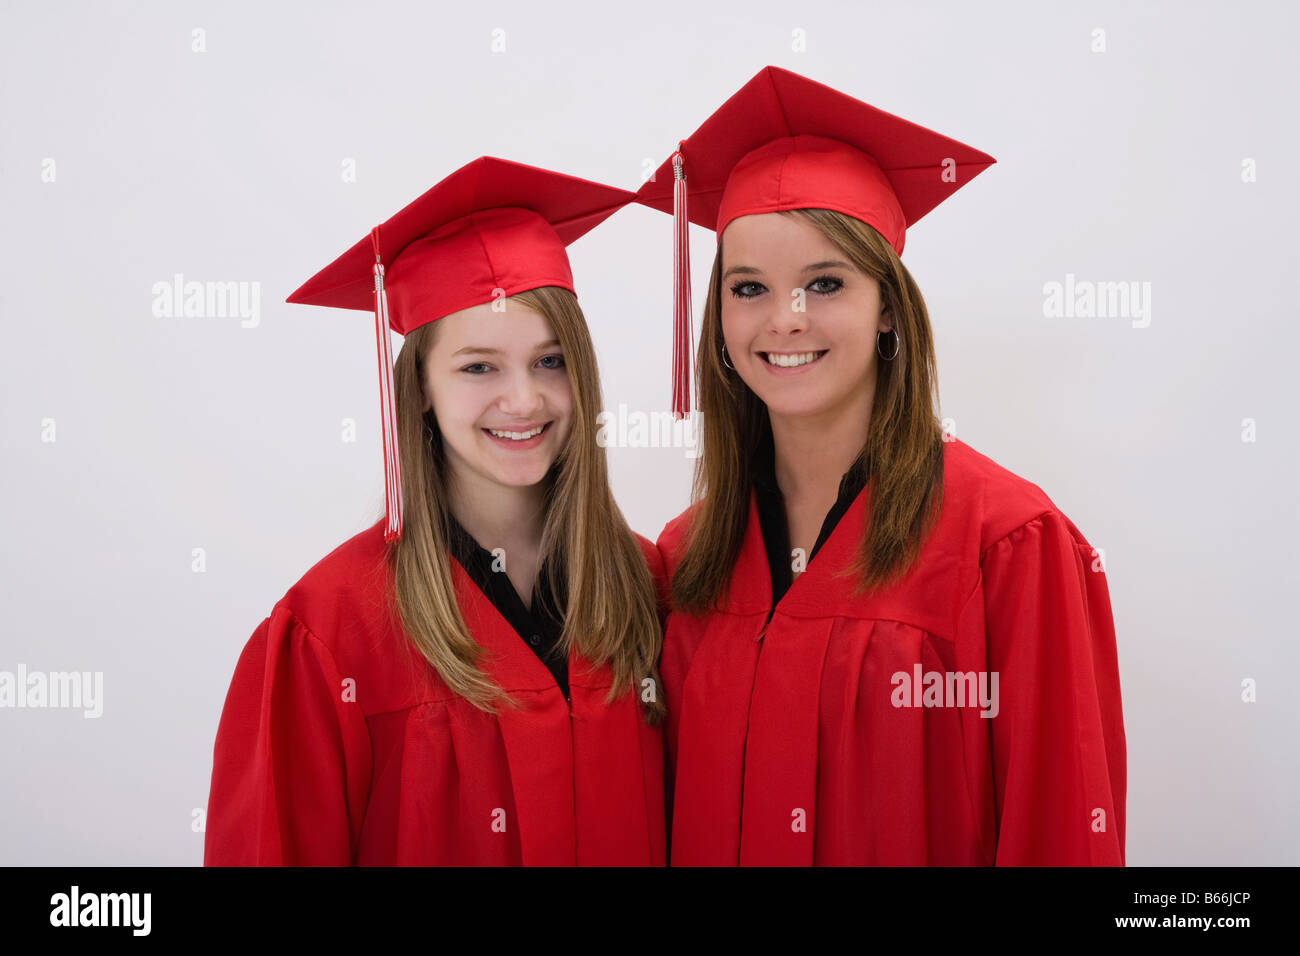 Red Gown Gowns Stock Photos & Red Gown Gowns Stock Images - Alamy